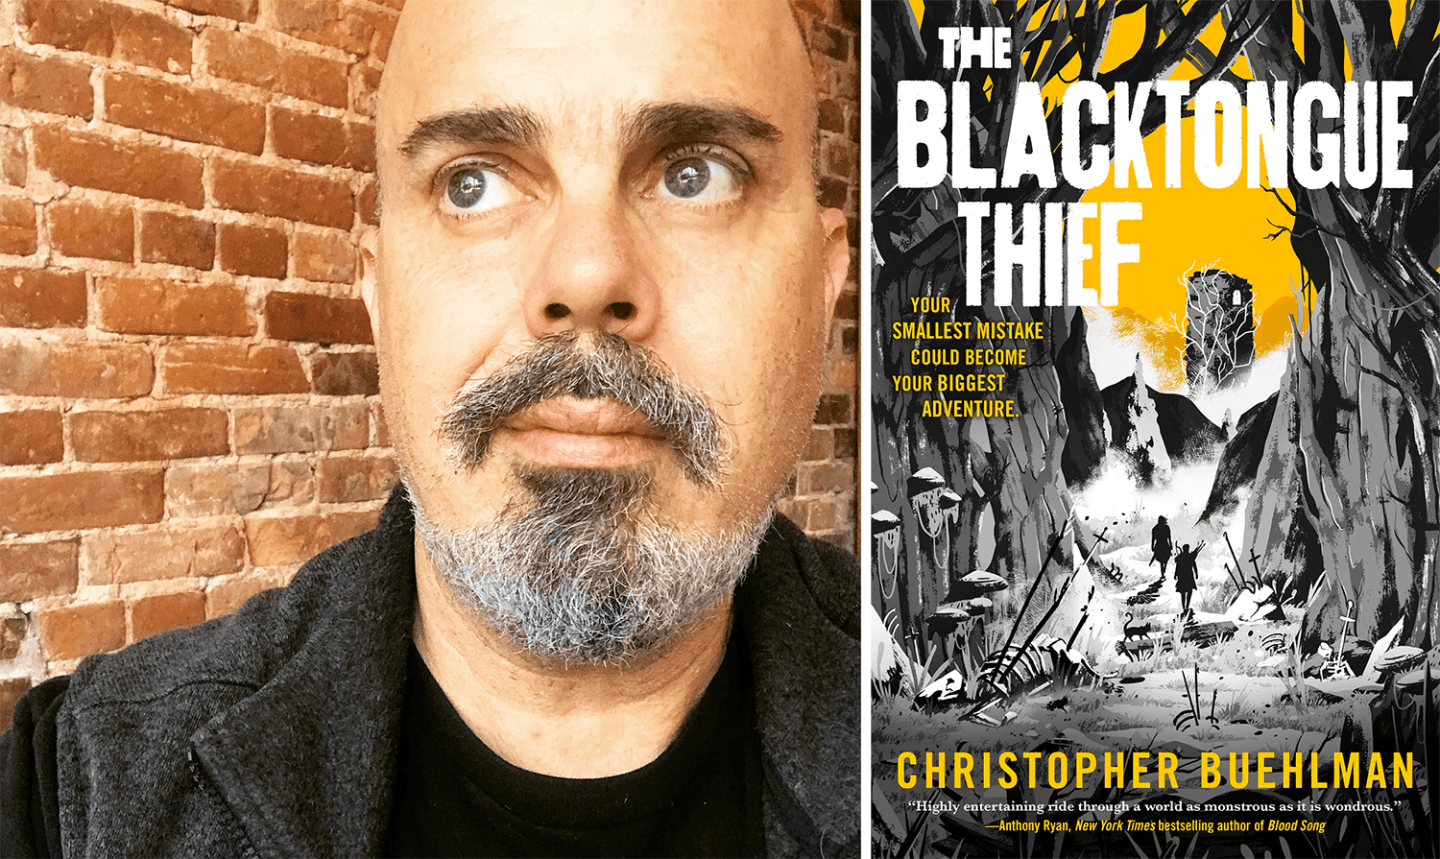 Author photo of Chrisopher Buehlman with book cover for The Blacktongued Thief